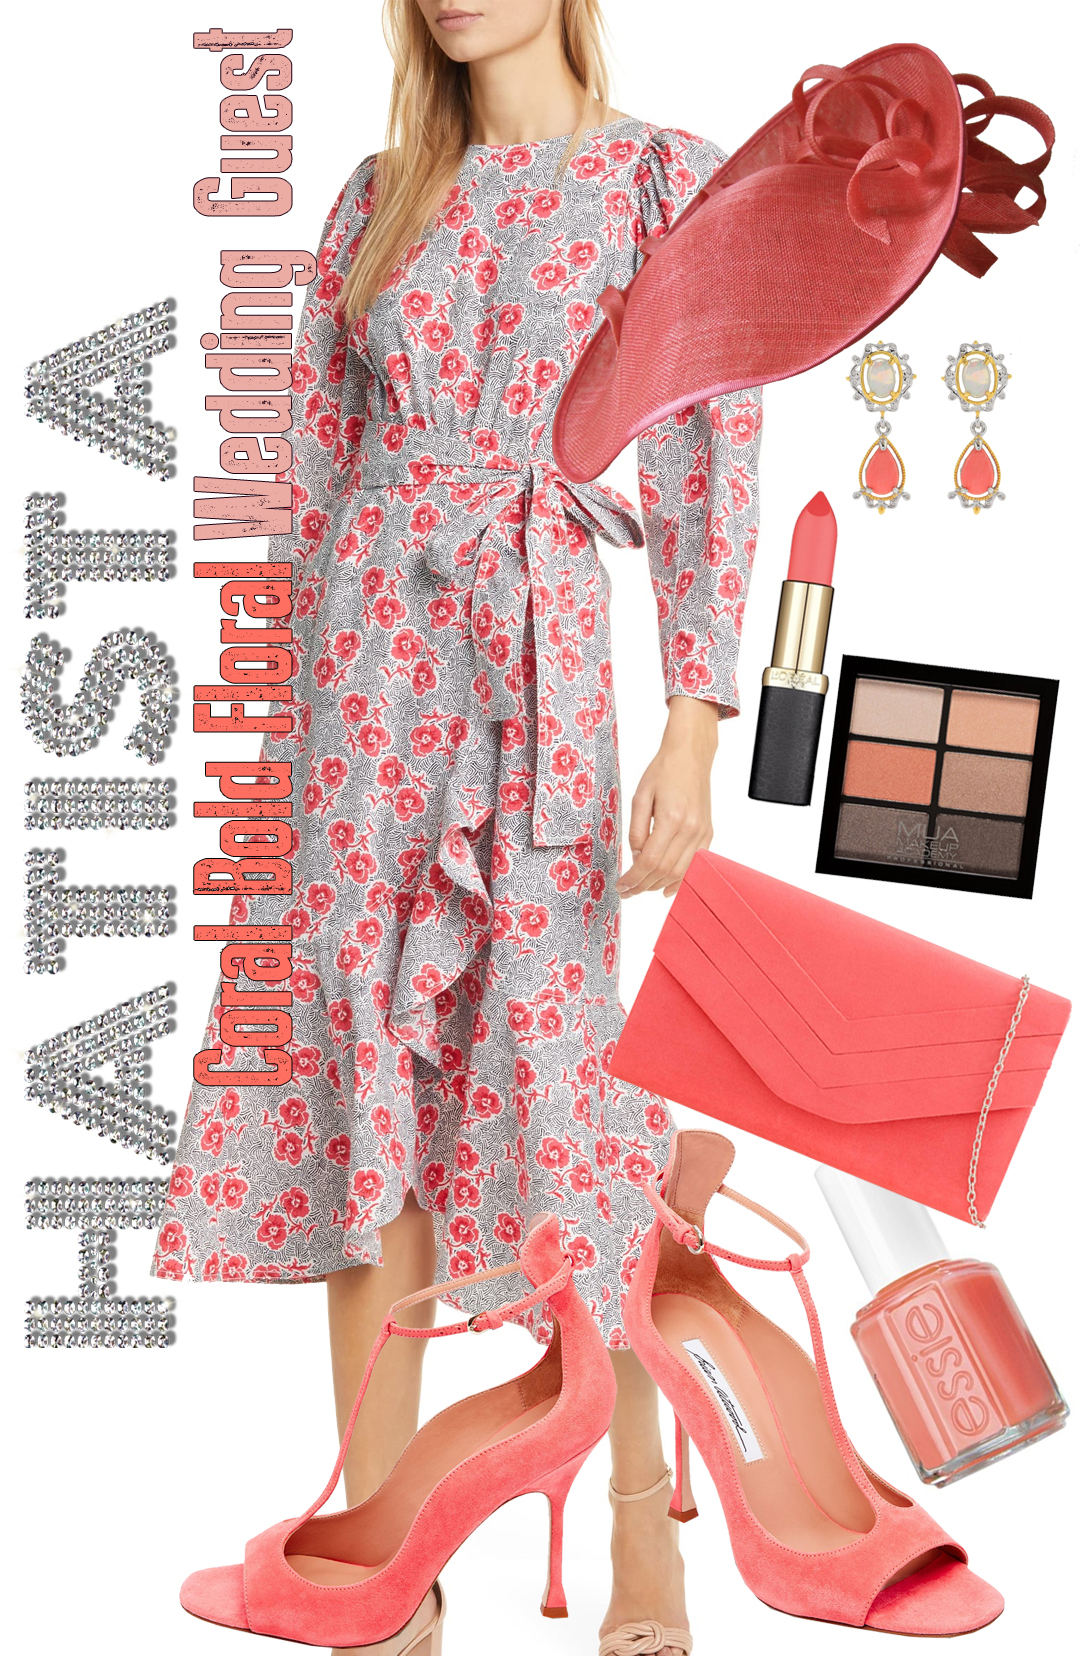 How to Wear Coral. How to Wear Living Coral. Outfit ideas with Living Coral. Coral Mother of the Bride Outfit. Coral outfit ideas. What to wear for a spring wedding. Spring Wedding outfit ideas. What to wear for a day at the Races.